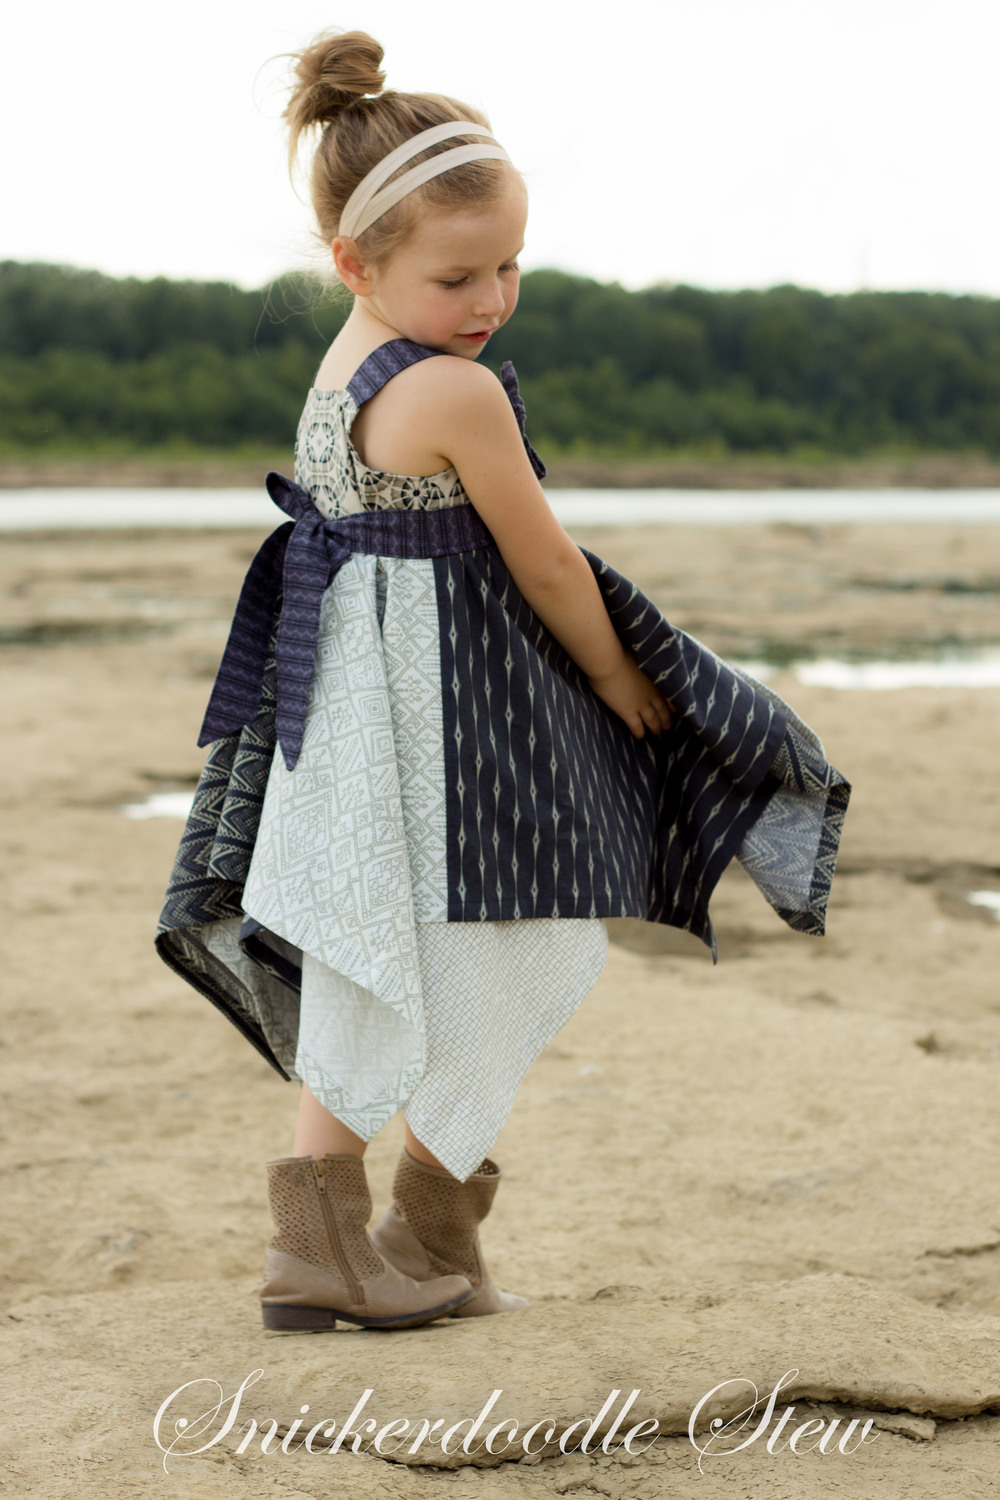 Parson Gray Inspired Handkerchief Knot Dress- Pattern Revolutiton